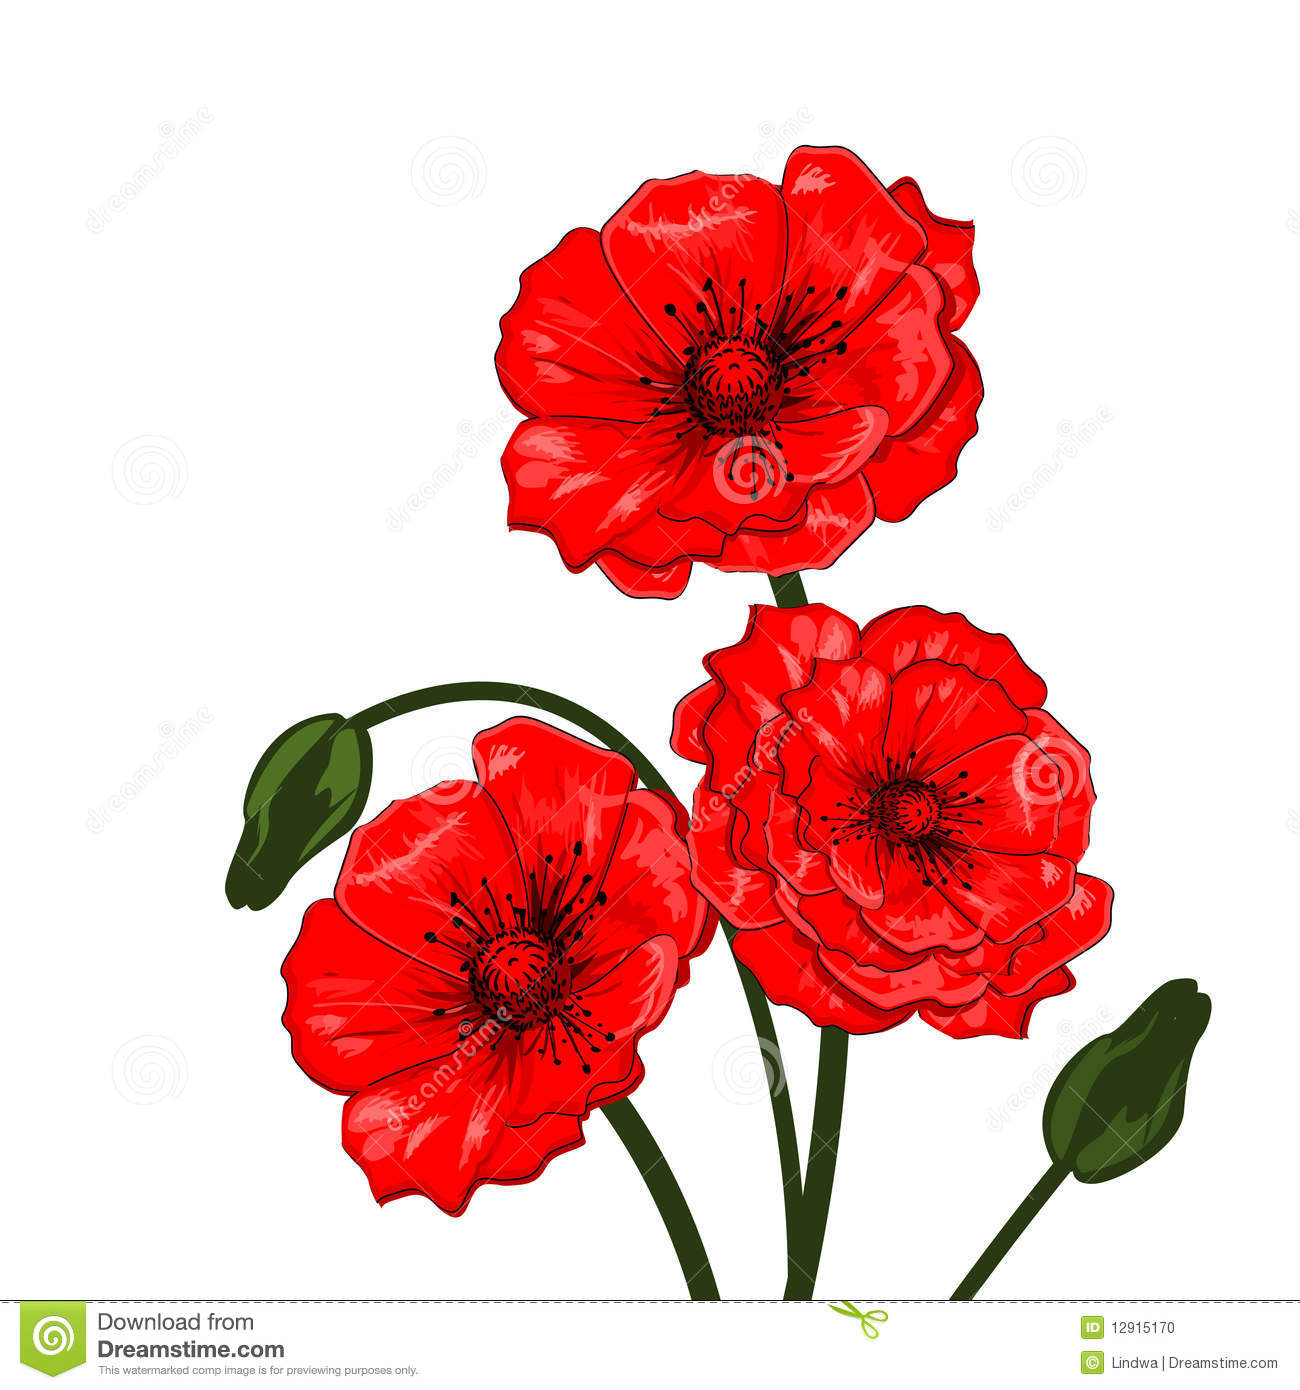 red poppies vector stock vector illustration of splat splatter grunge vectors splatter grunge vectors